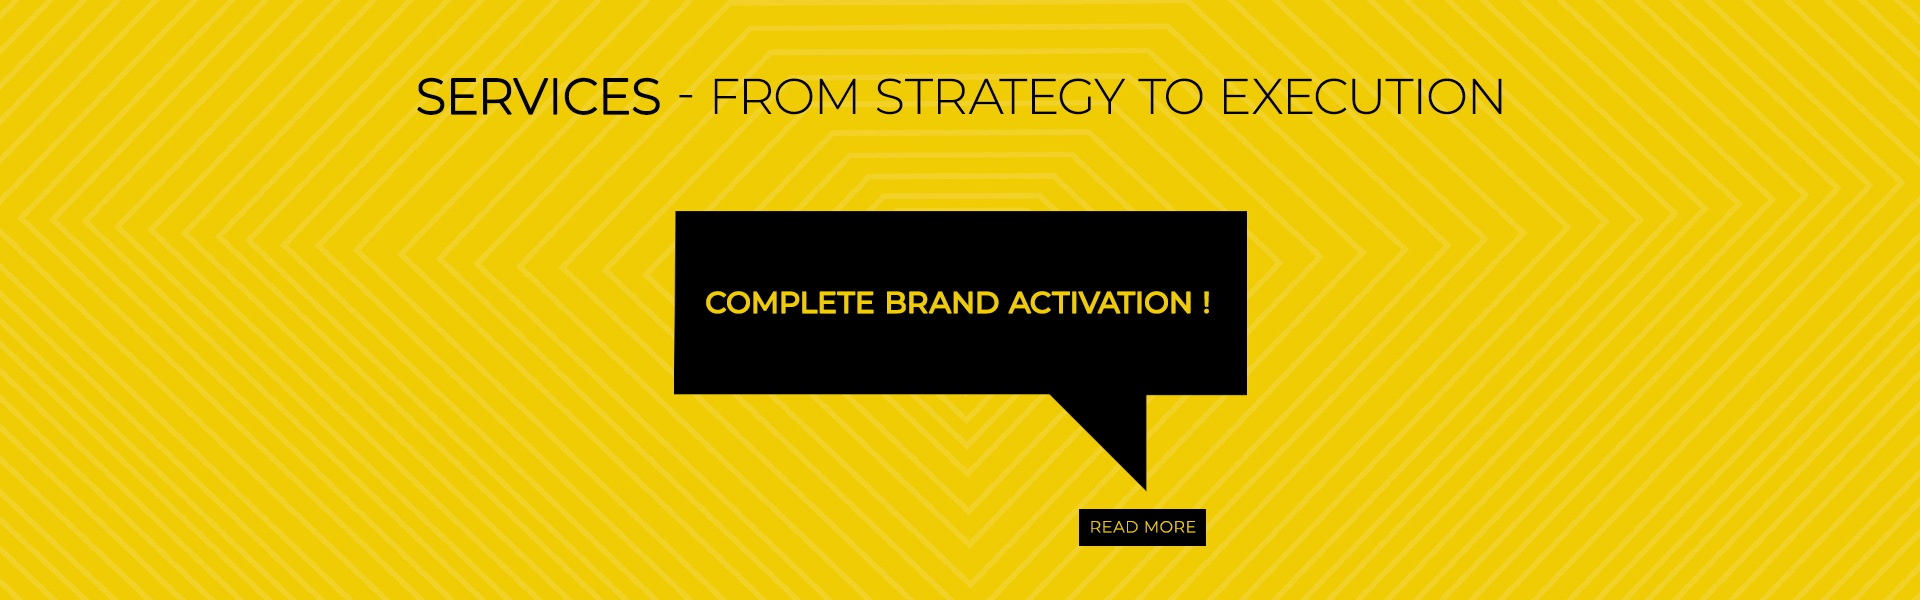 brand activation strategy